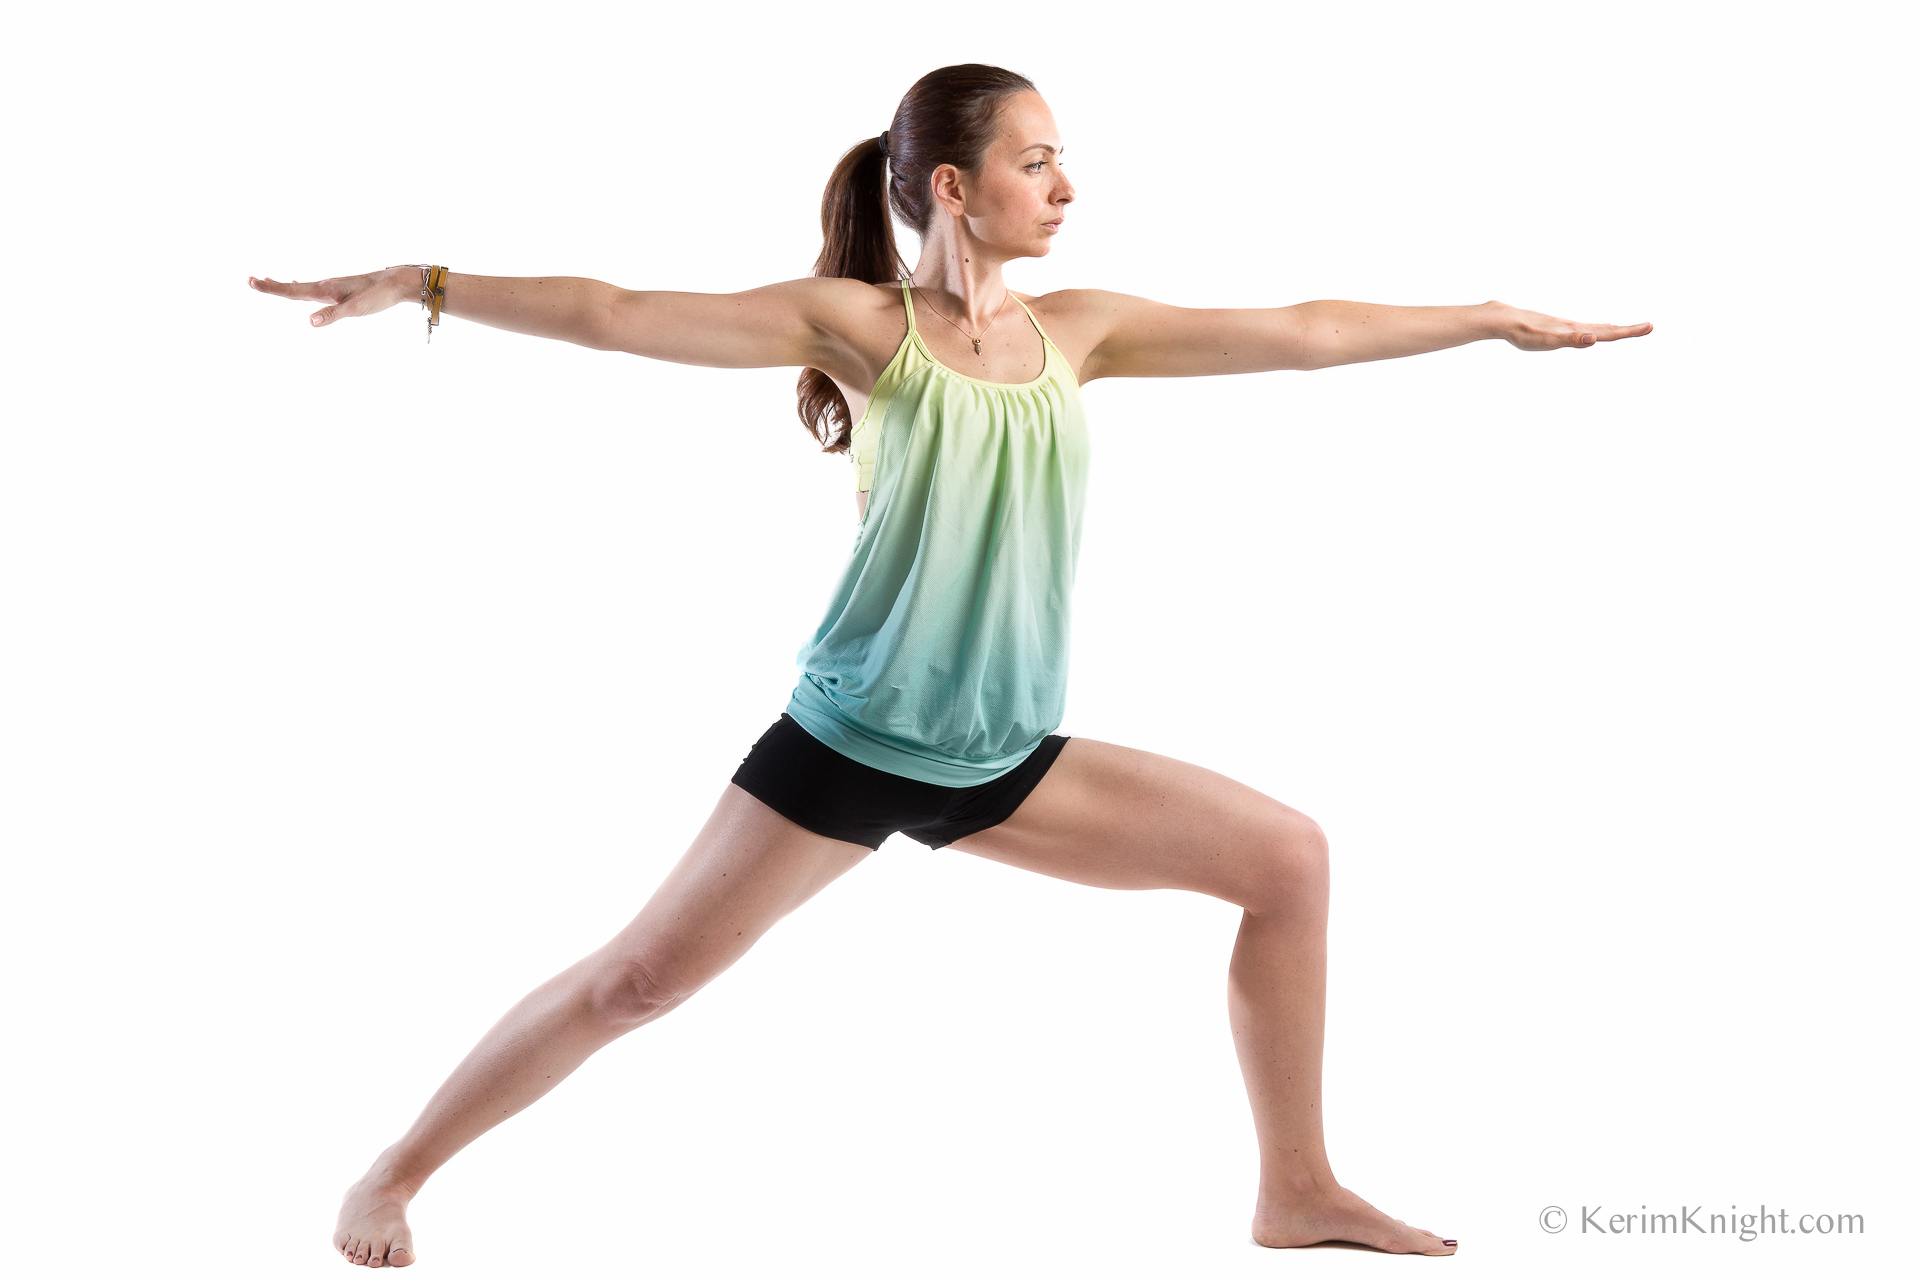 simple essay on yoga Complementary and alternative medicine had a  complementary and alternative medicine health and  if you are the original writer of this essay and no longer.